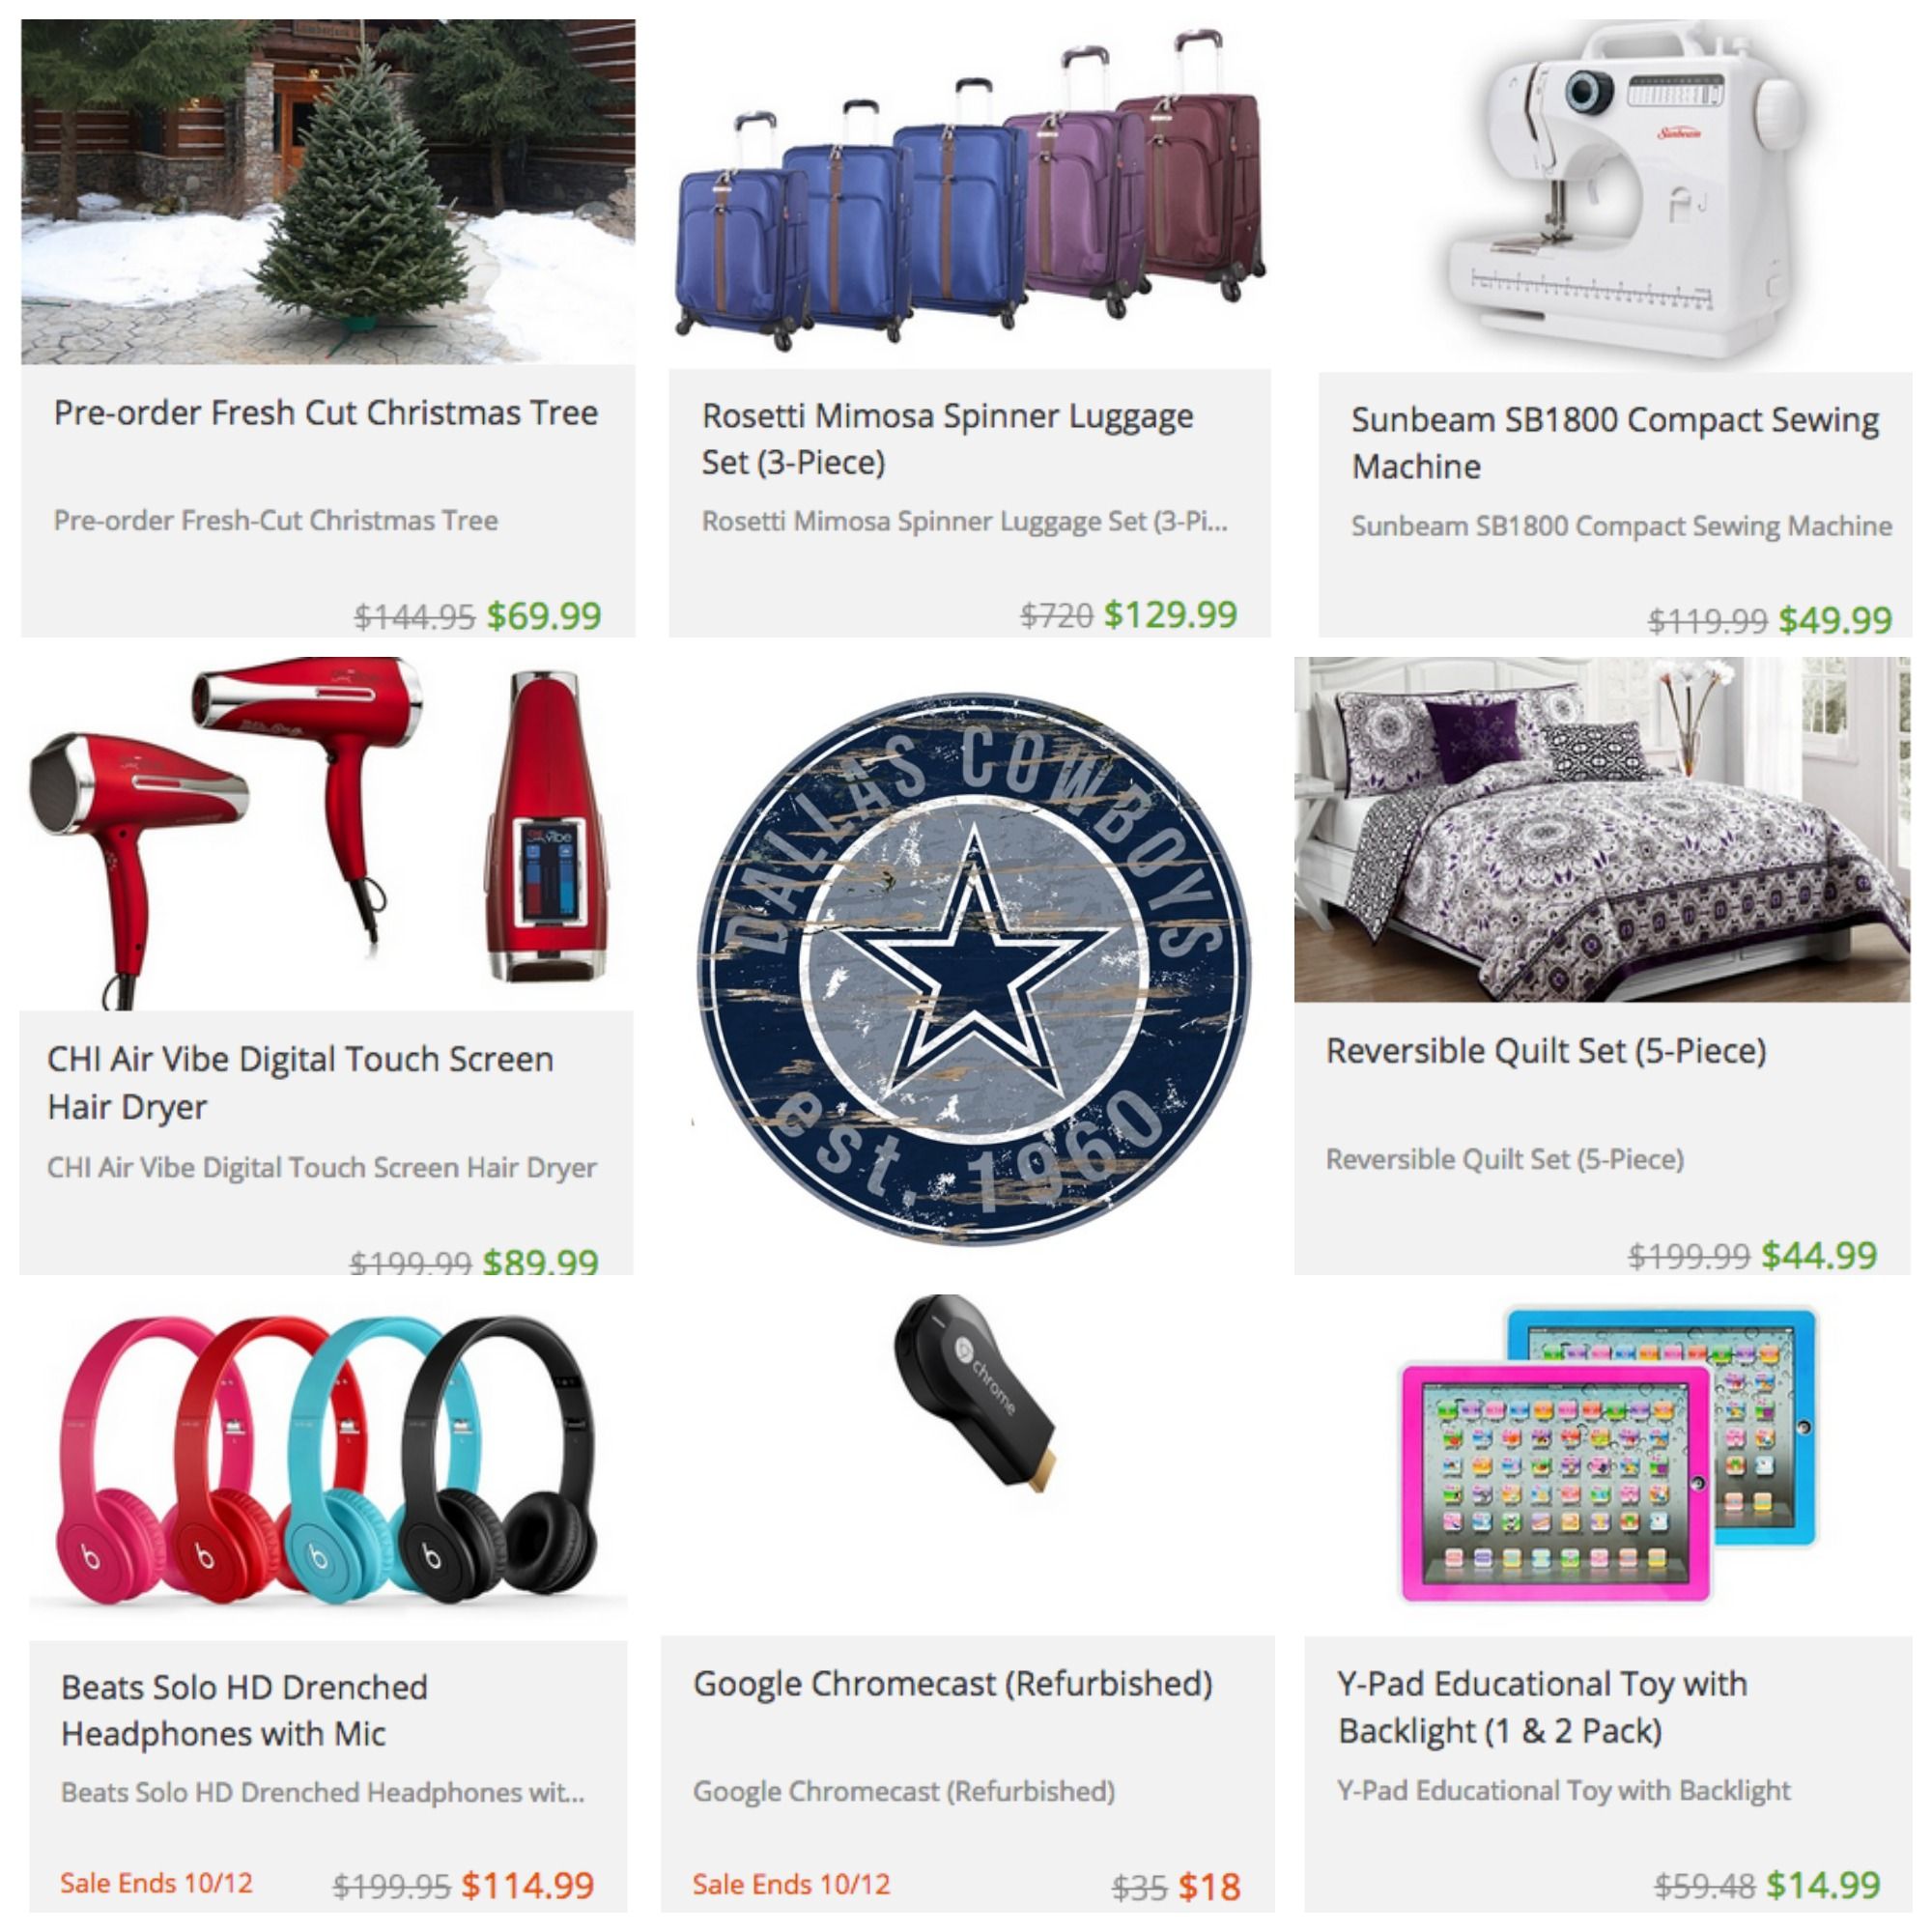 ... Red Roof Features Over 500.Whereu0027s The Promo Codes?? By Denise7809813  Via Mobile. 25% OFF. Sale. Save. Get Deal. Verified. 163 Uses Today. No Code  ...